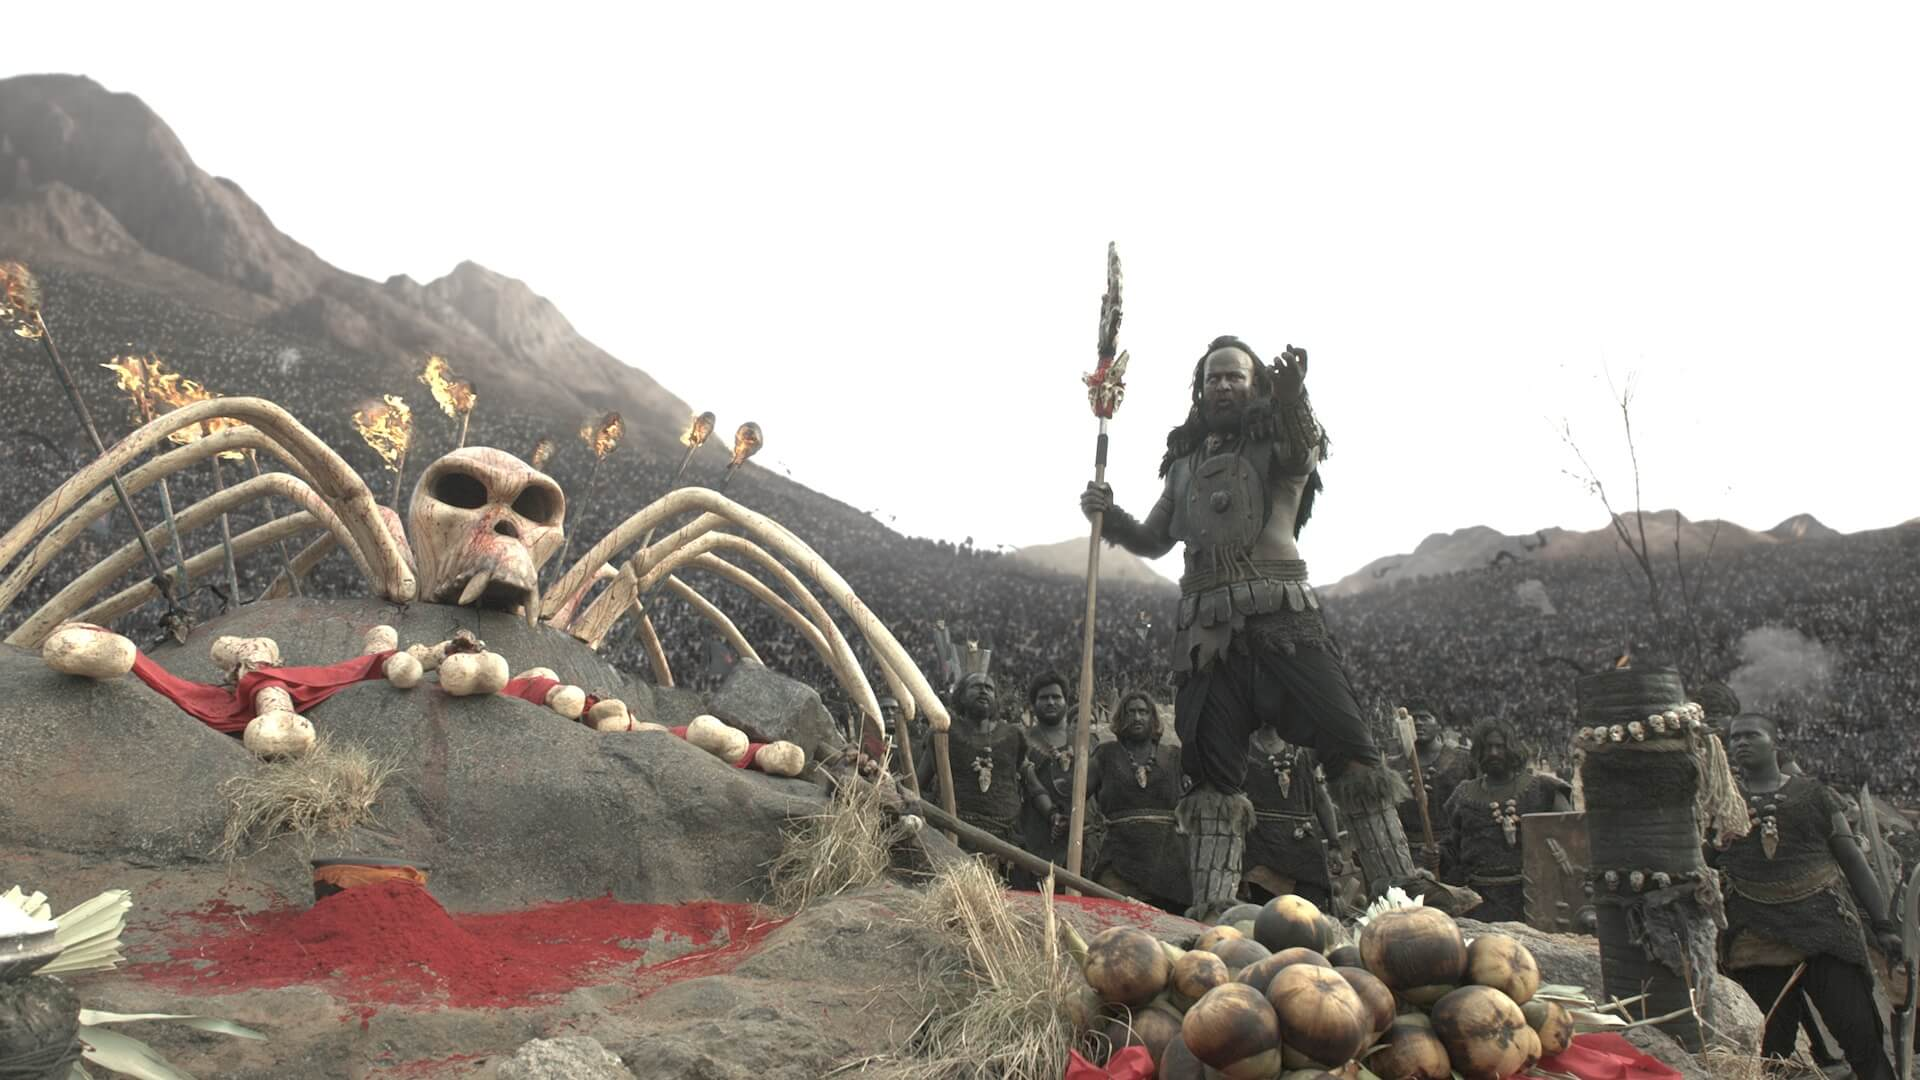 srushti creative, animation, compositing, 3d, war sequence,